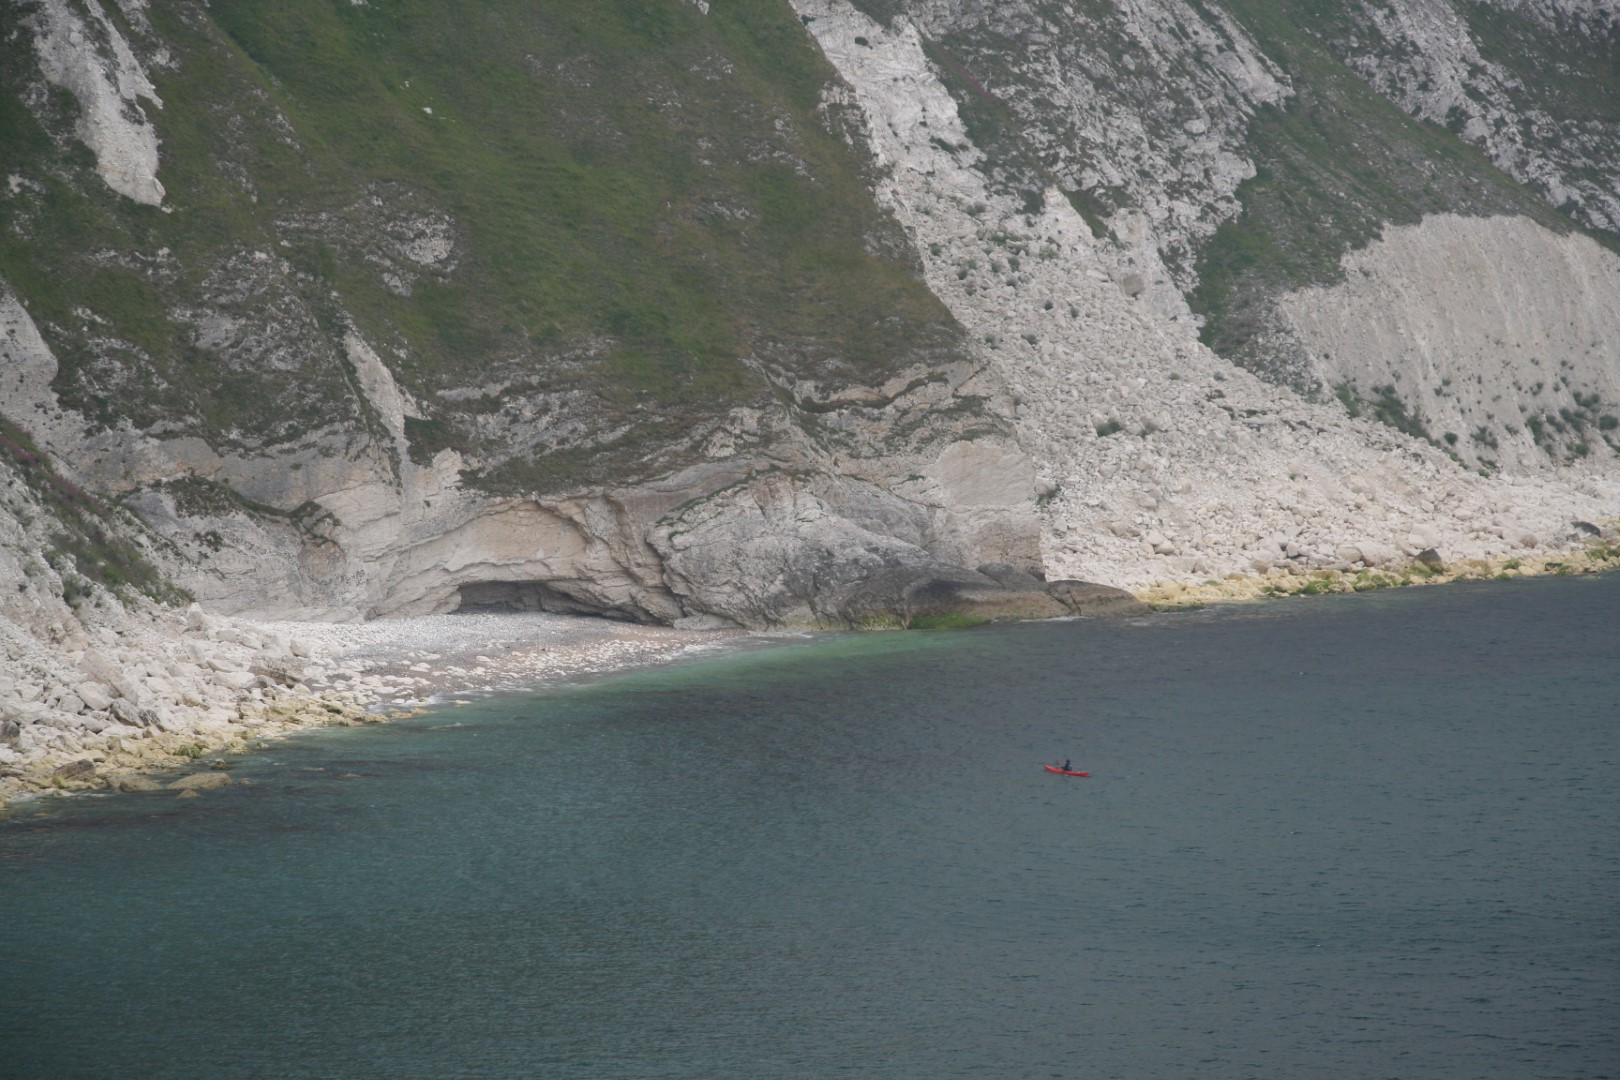 This kayaker shows the scale of the cliffs.